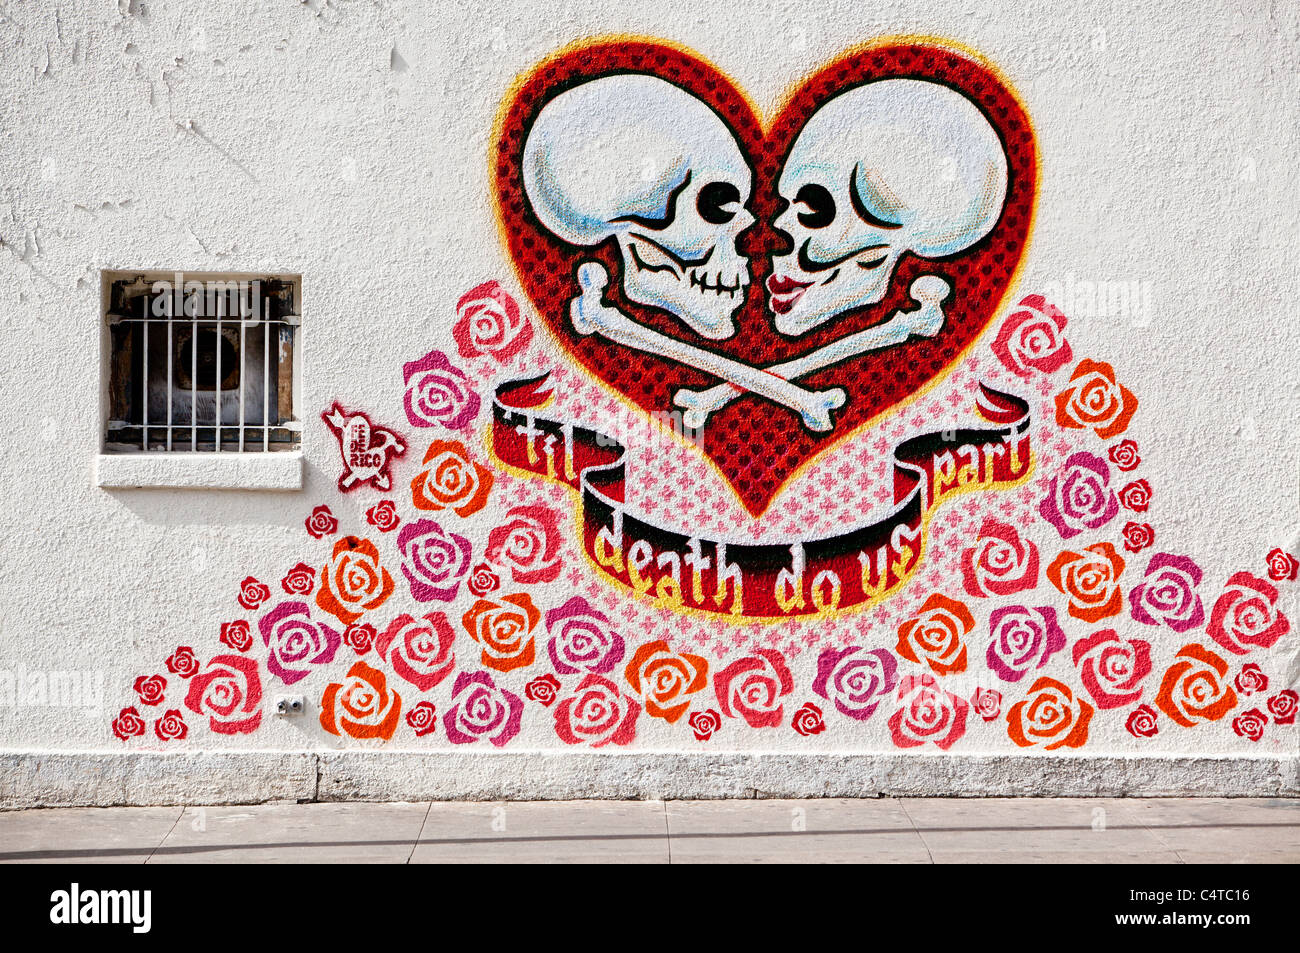 Austin Texas - A mural on the wall of the Mexic-Arte Museum by artist Federico Archuletta -  Til Death Do us Part  & Austin Texas - A mural on the wall of the Mexic-Arte Museum by ...